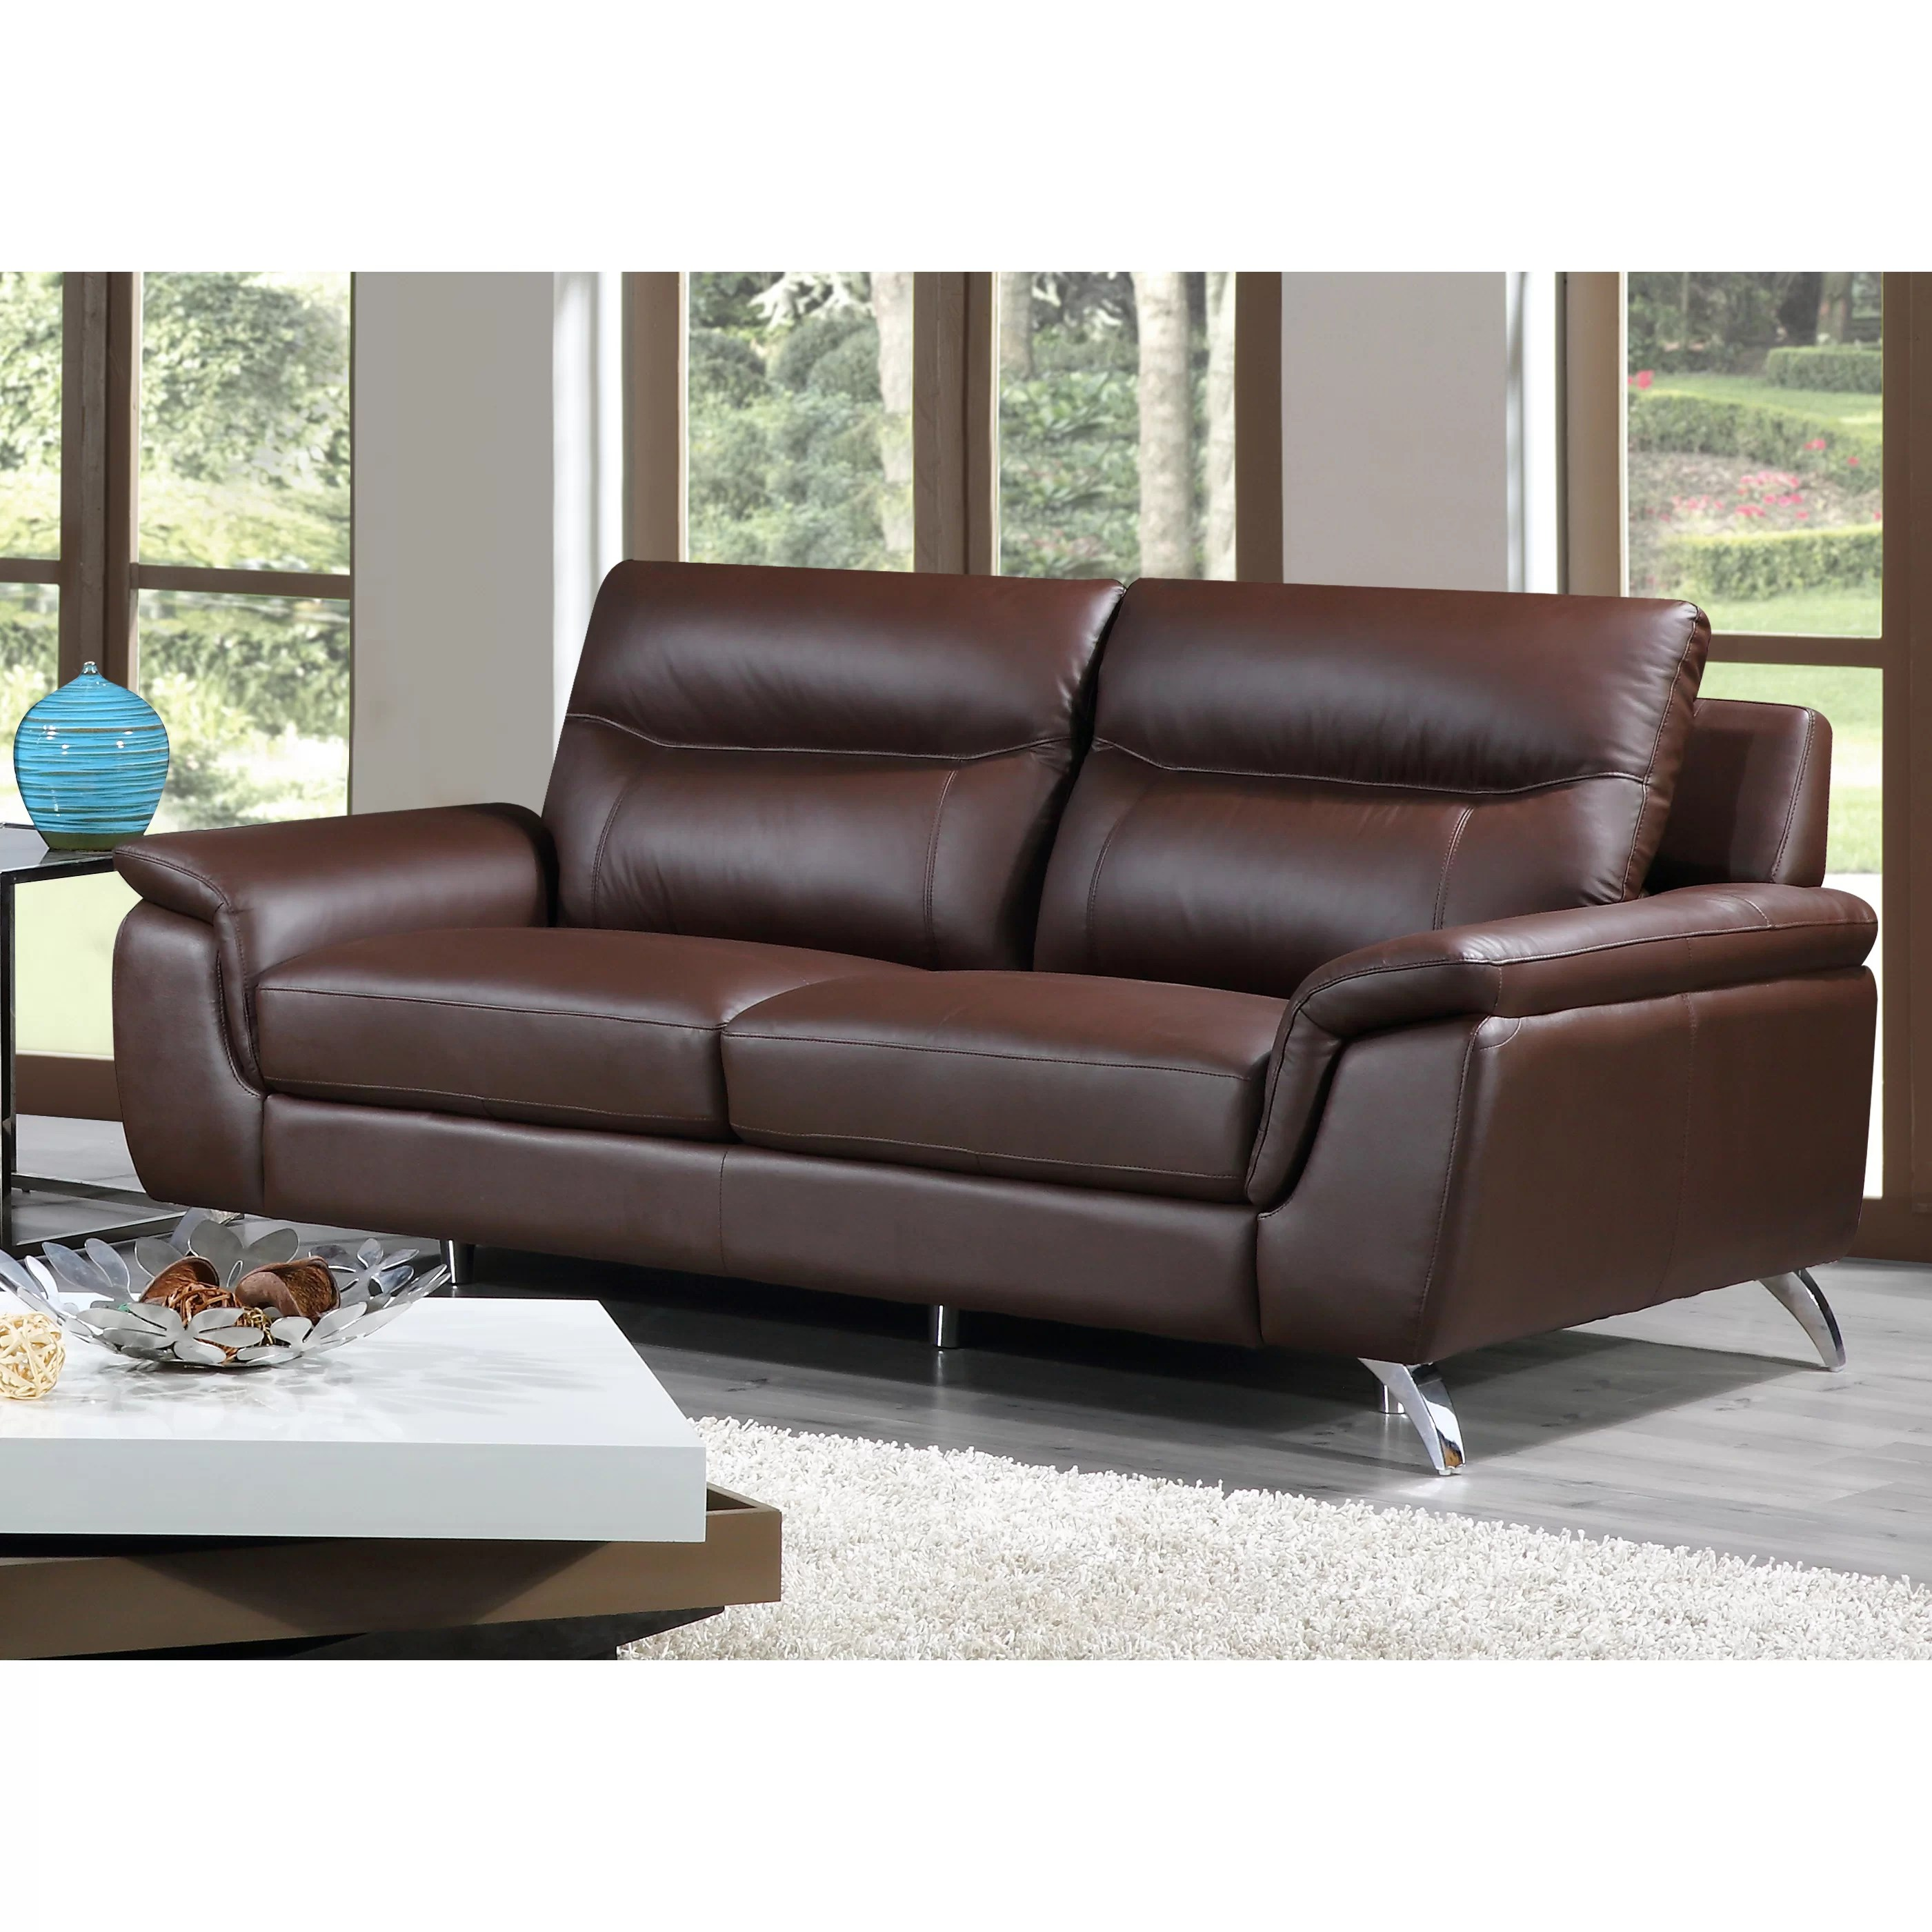 leather sofas chicago area sofa protector covers cortesi home and reviews wayfair